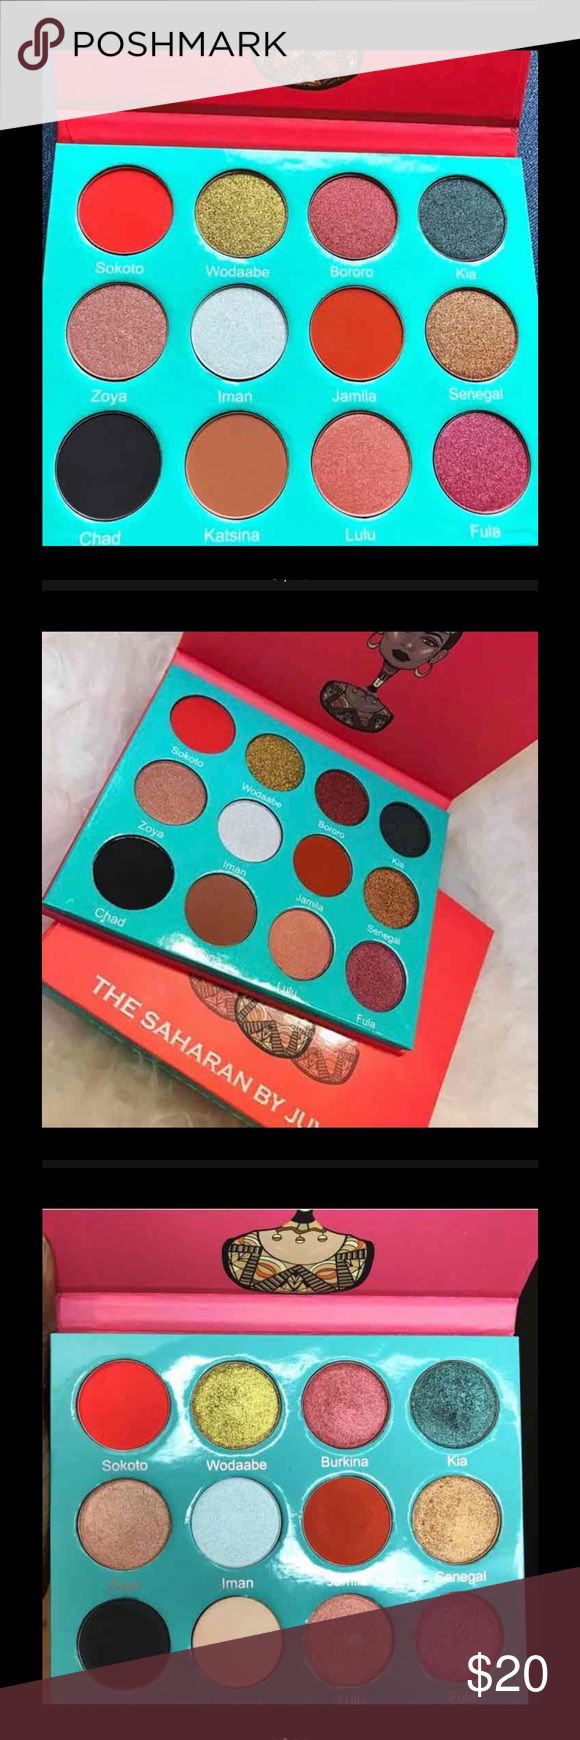 The Sahara palette by juvias Juvia's place The Saharan palette. SOLD OUT. BRAND NEW. 100% authentic, with proof of purchase. Tags: morphe, sephora, naked, urban decay, colourpop, tarte, makeup geek, eyeshadow palette, kylie Newww ,! Never used ! Exelent pigment ‼️ Makeup Eyeshadow